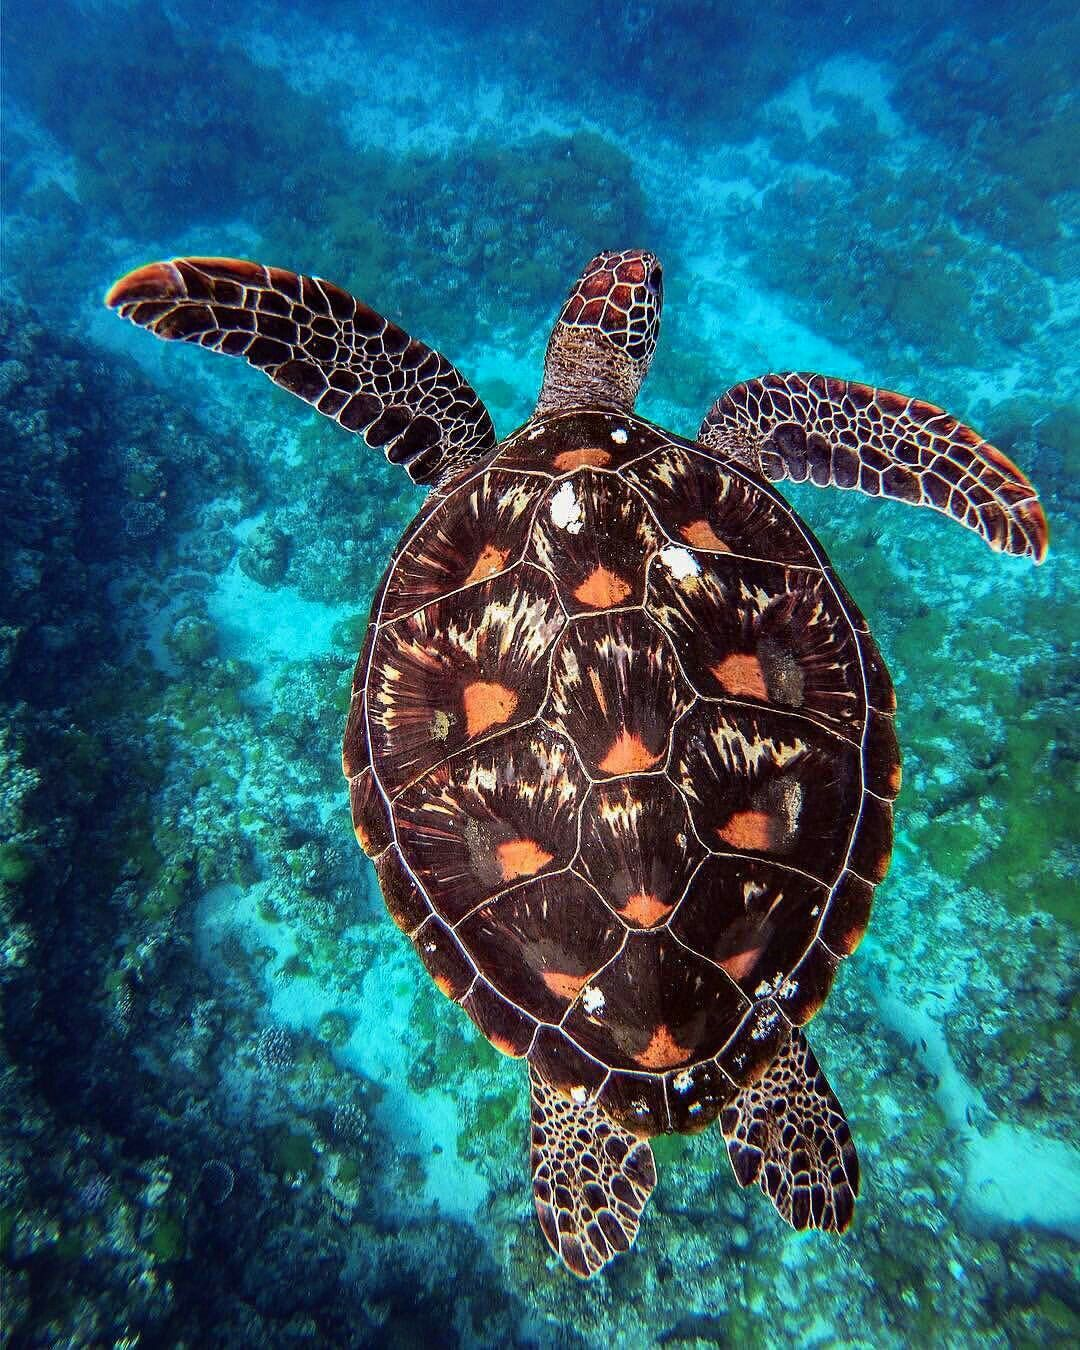 Sea Turtle lovely shell details | Tortugas marinas, Animales ...